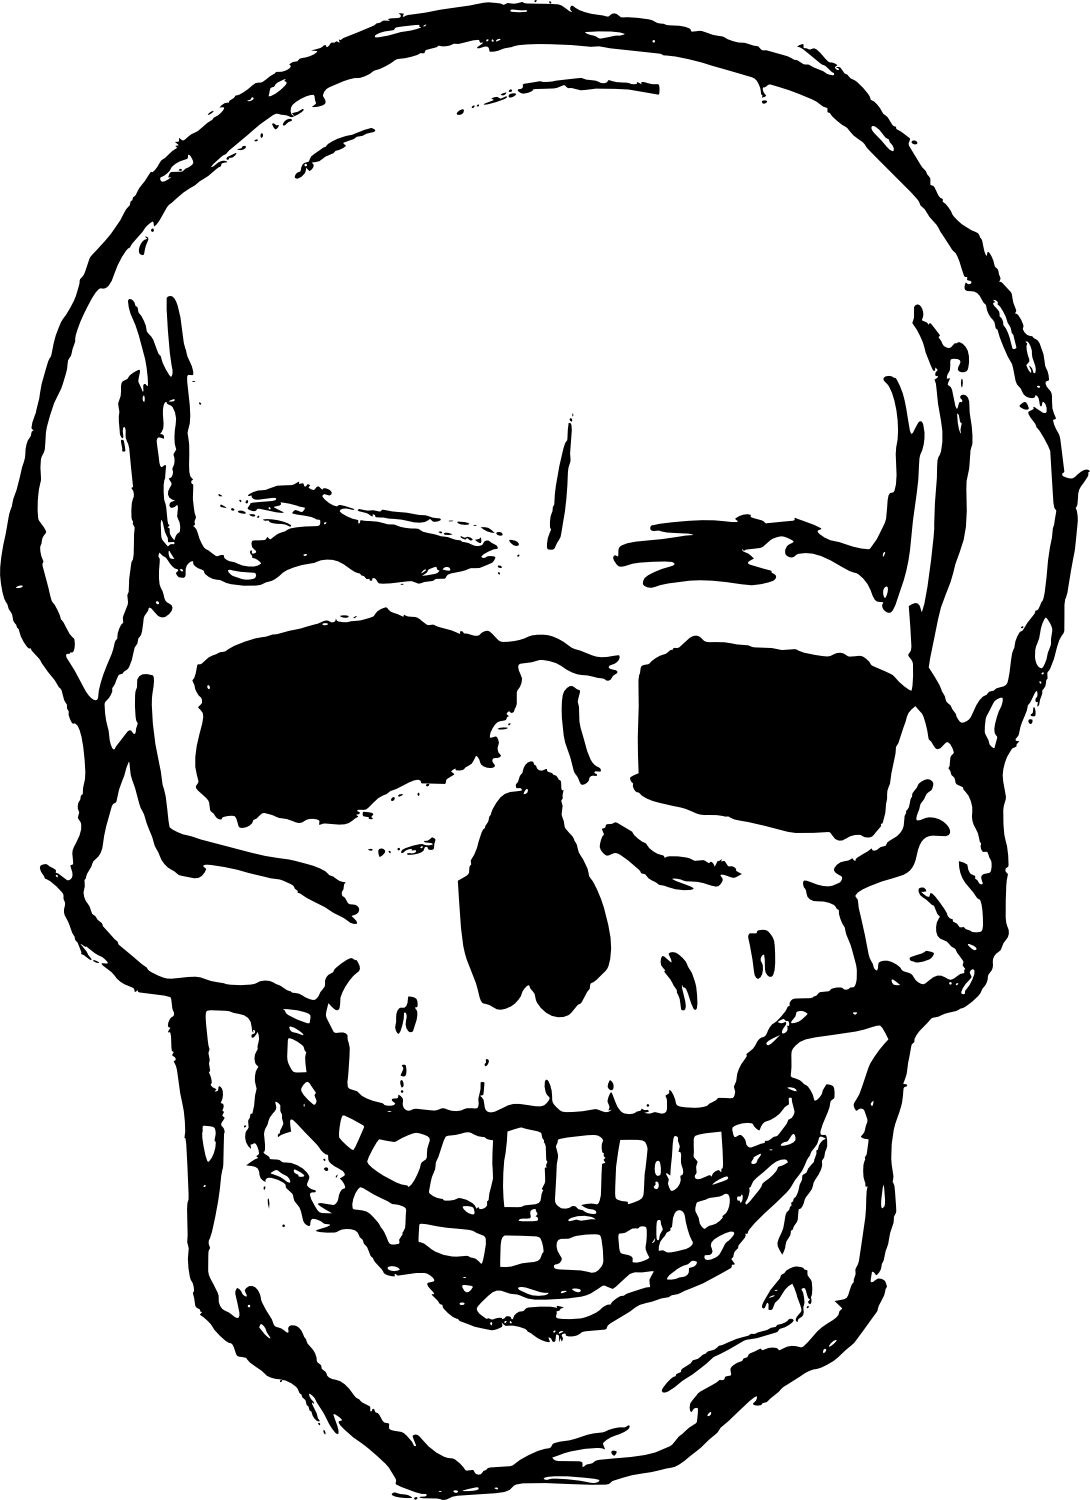 Halloween skeleton head clipart svg library library Cleats Drawing at GetDrawings.com | Free for personal use Cleats ... svg library library